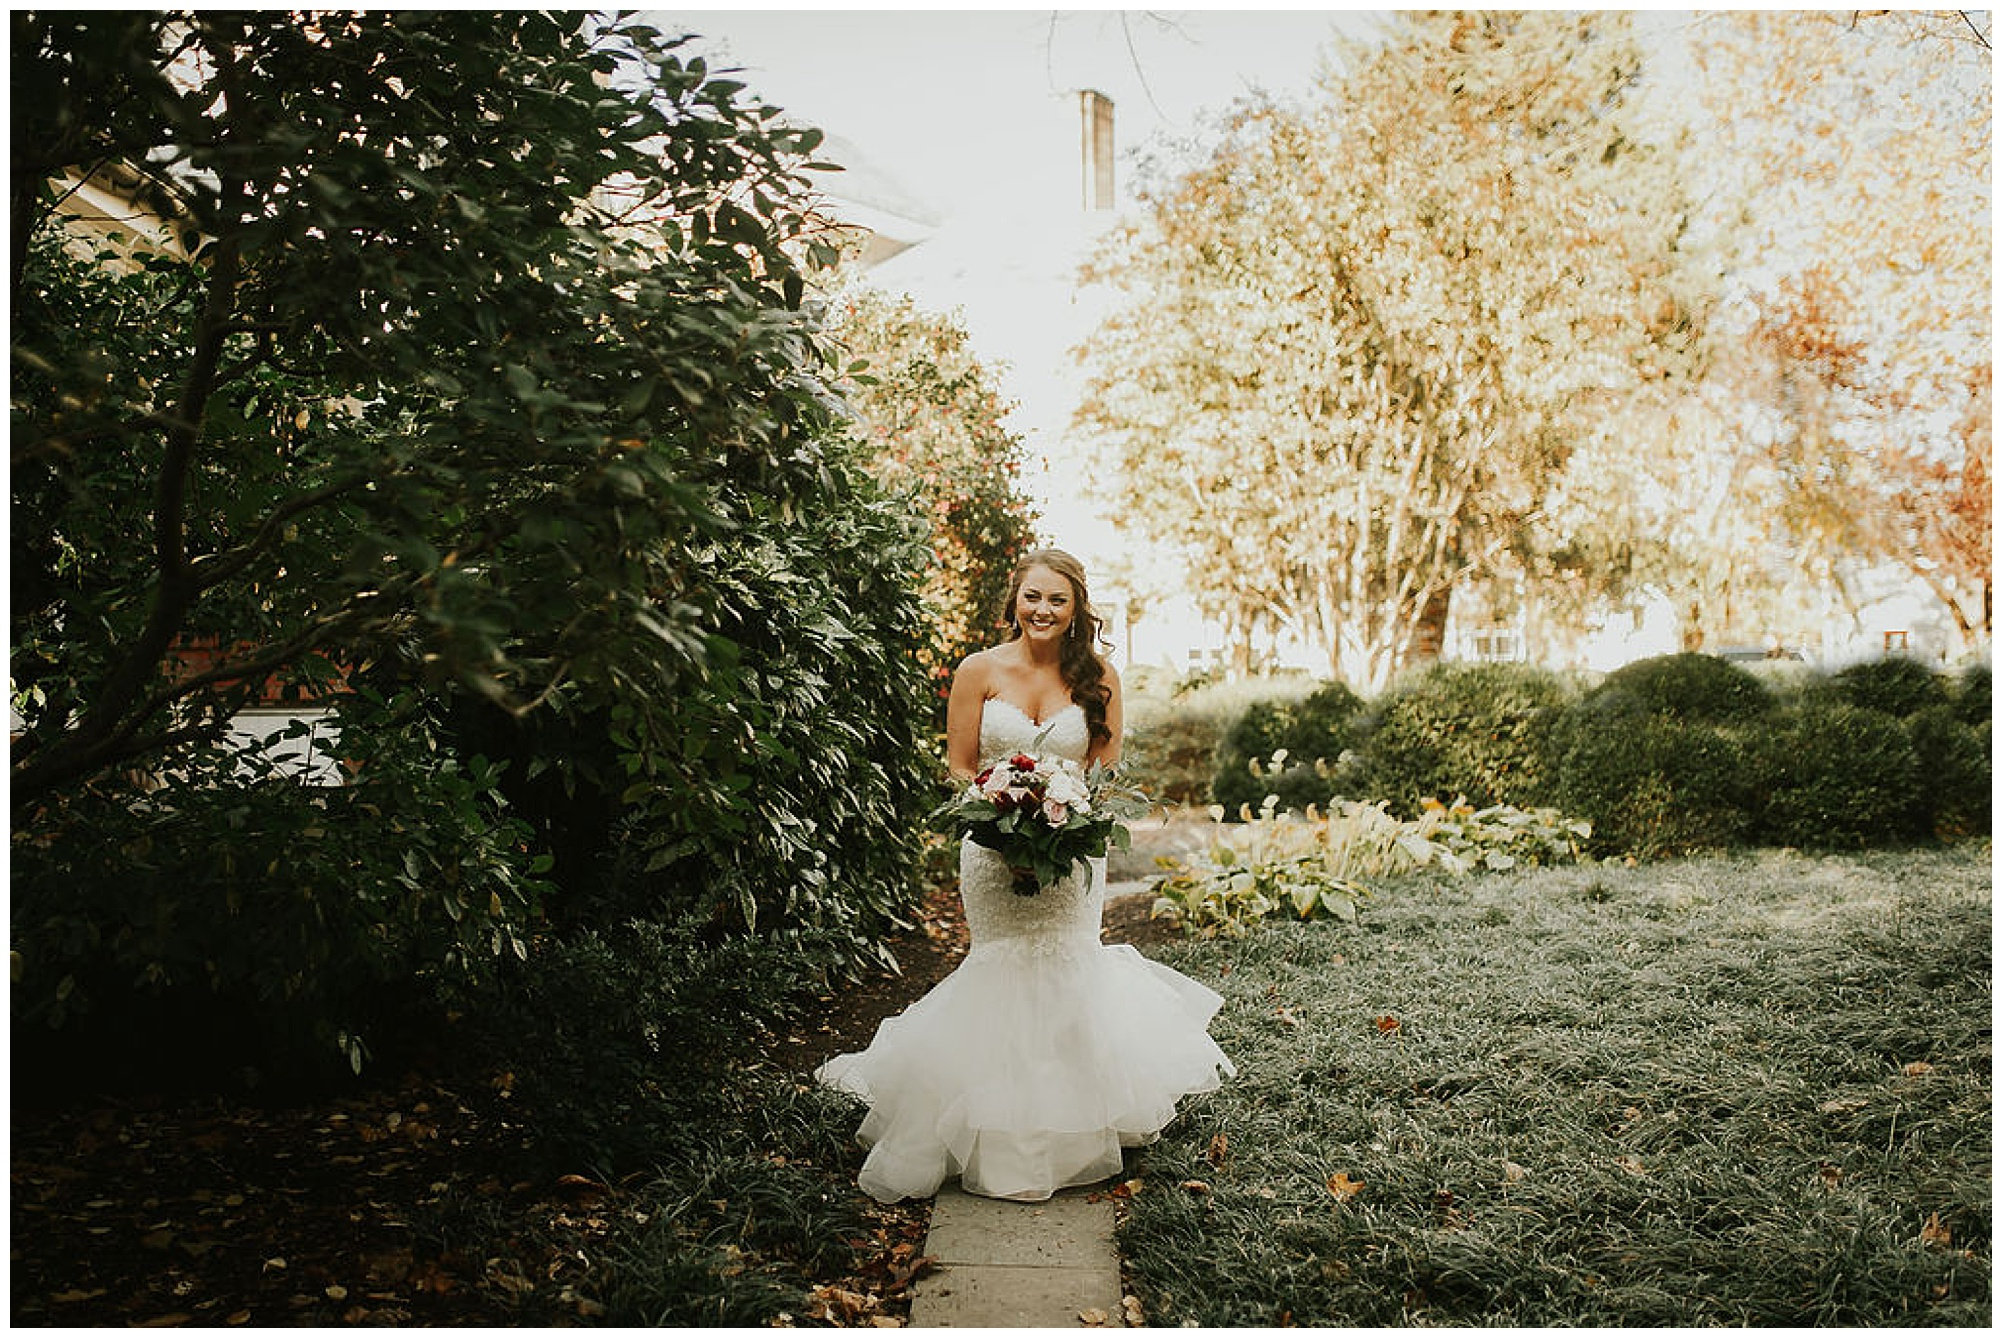 bride wearing mermaid style wedding gown dress outdoors at easton maryland venue on eastern shore. coastal, bay, shore inspired wedding ideas from my eastern shore wedding.